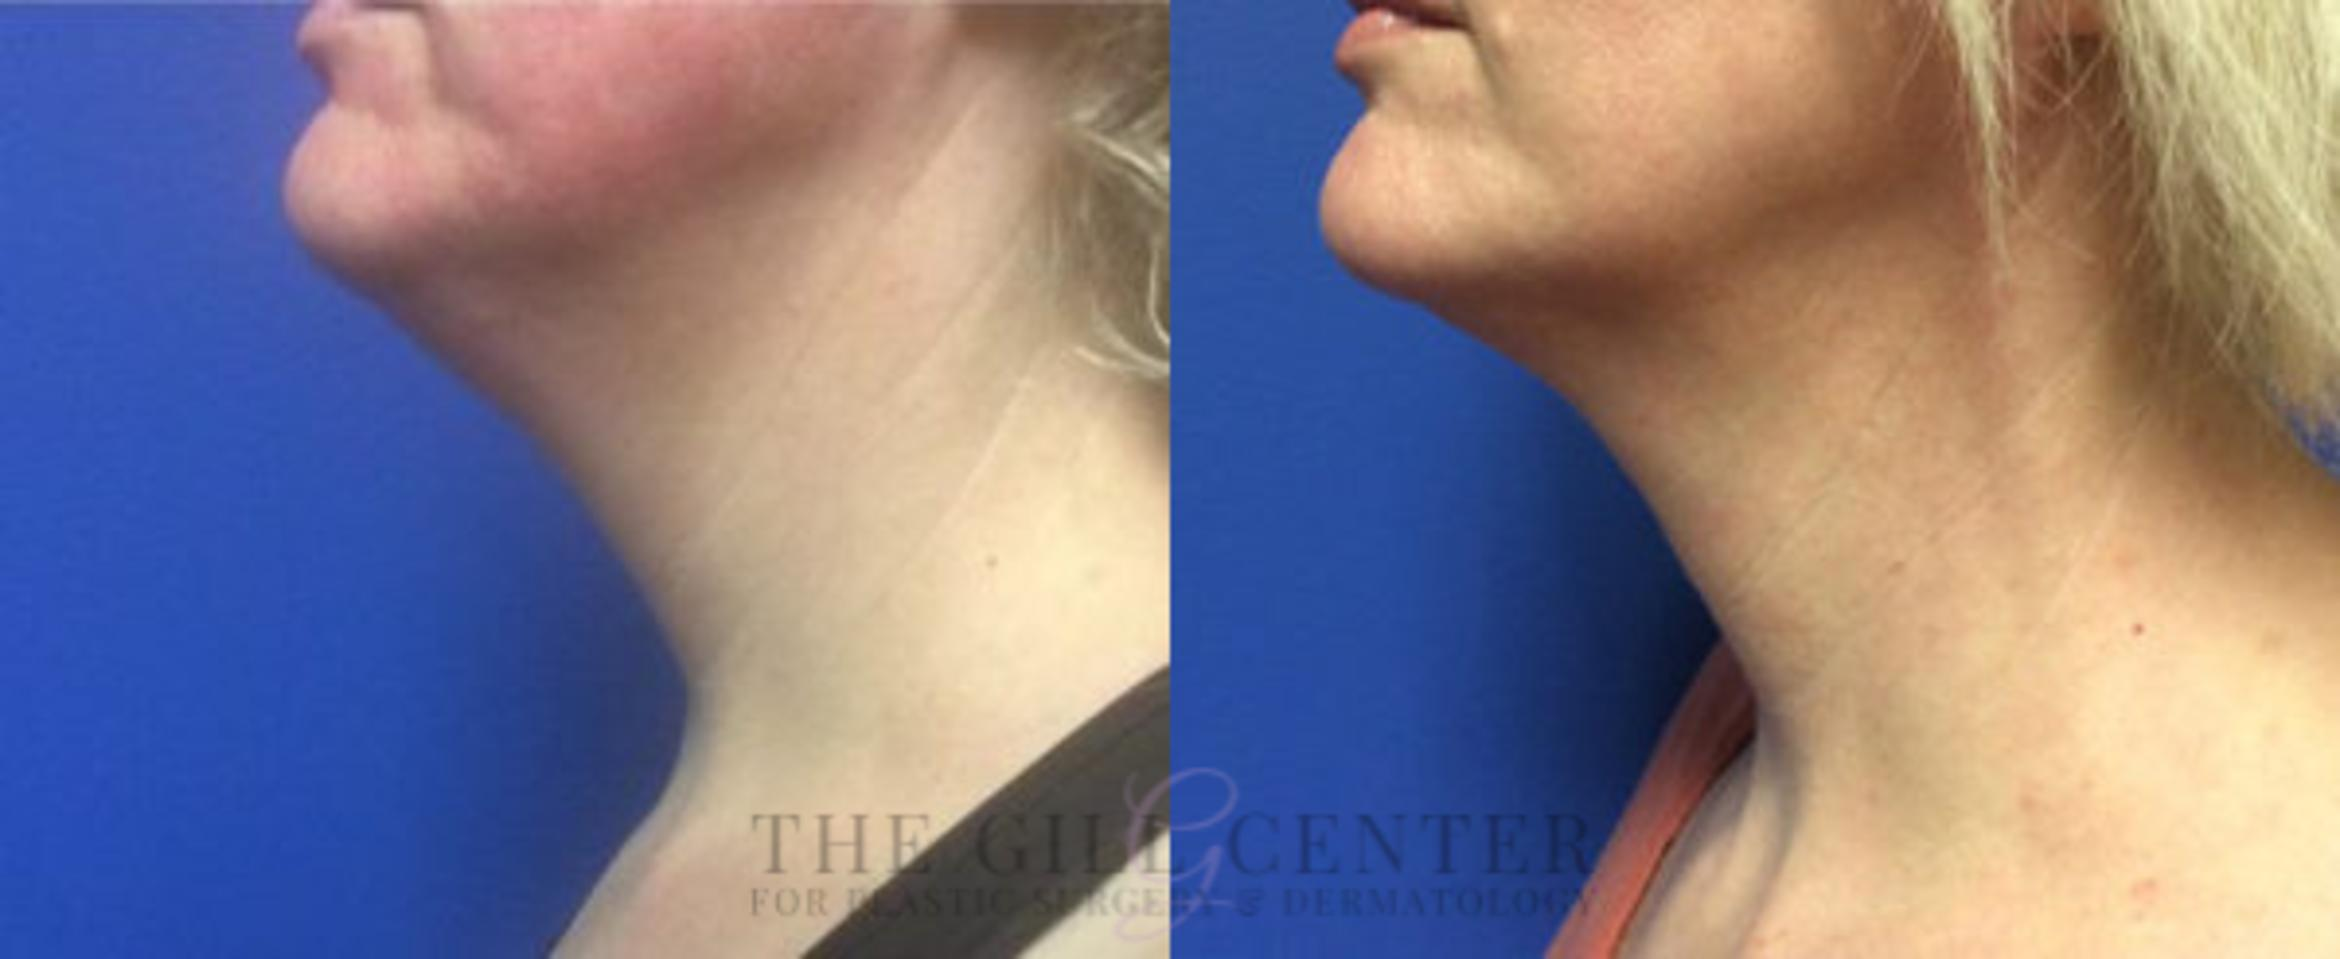 KYBELLA® Case 6 Before & After Left Side | The Woodlands, TX | The Gill Center for Plastic Surgery and Dermatology